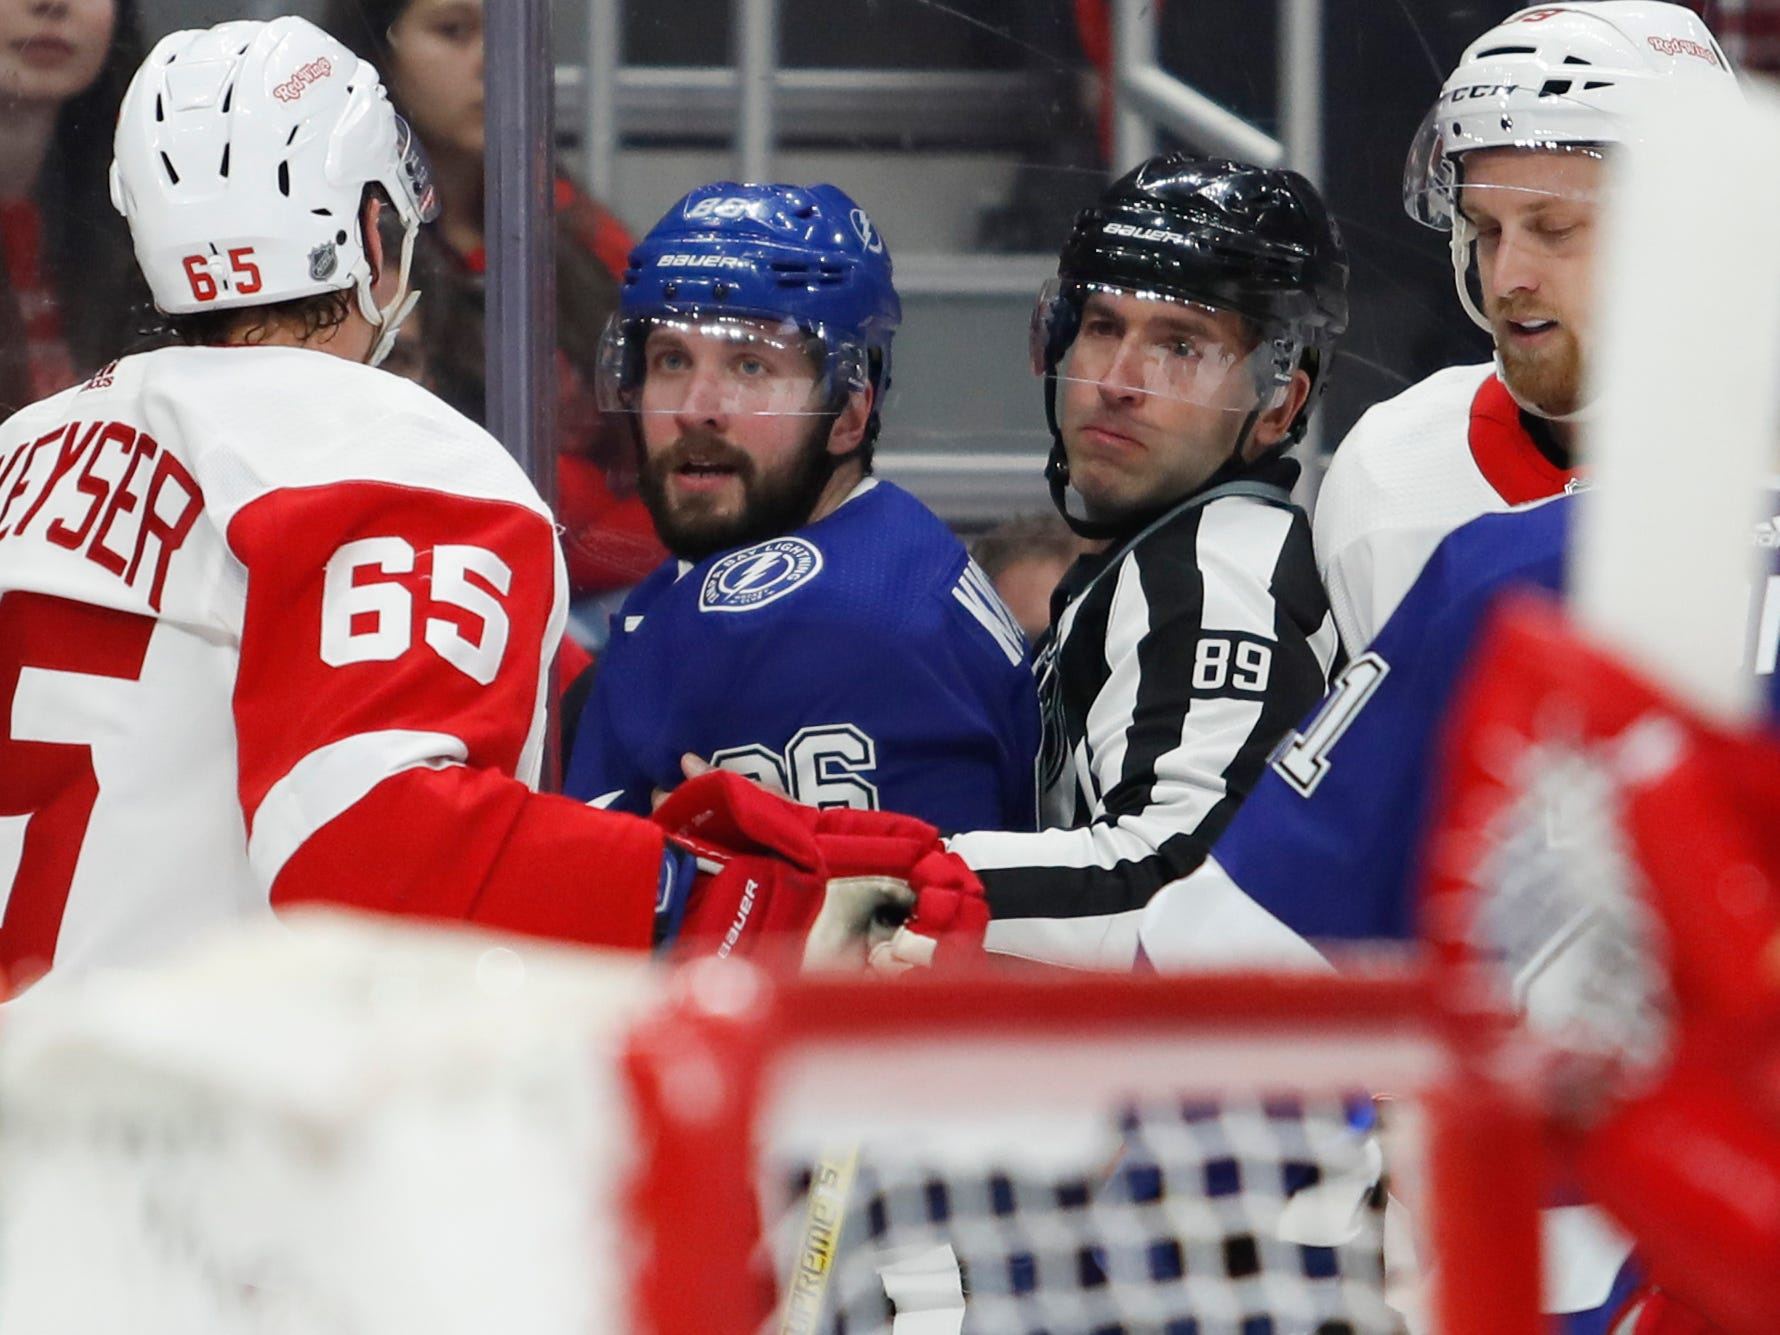 Tampa Bay Lightning right wing Nikita Kucherov (86) and Detroit Red Wings defenseman Danny DeKeyser (65) get into a shoving match during the first period at Little Caesars Arena on Thursday, March 14, 2019, in Detroit.